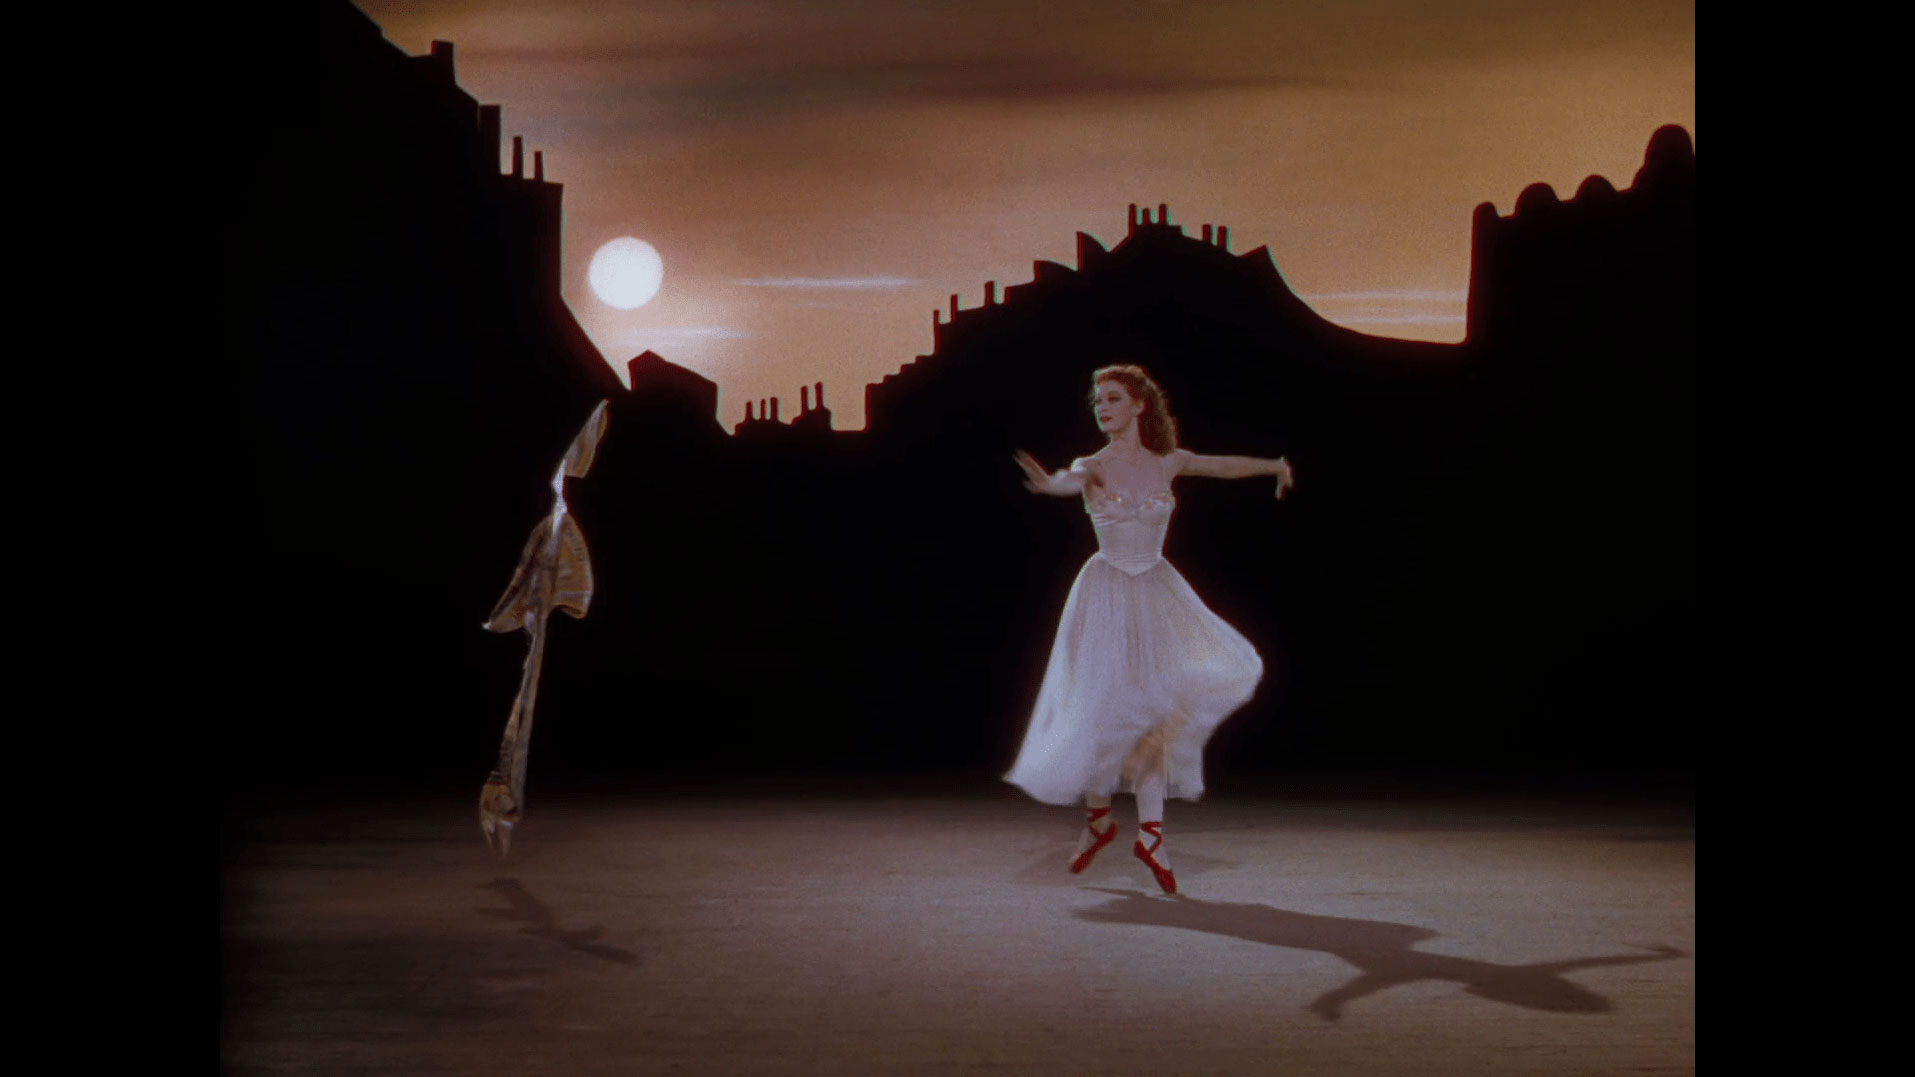 a woman in 40s attire dances with red shoes